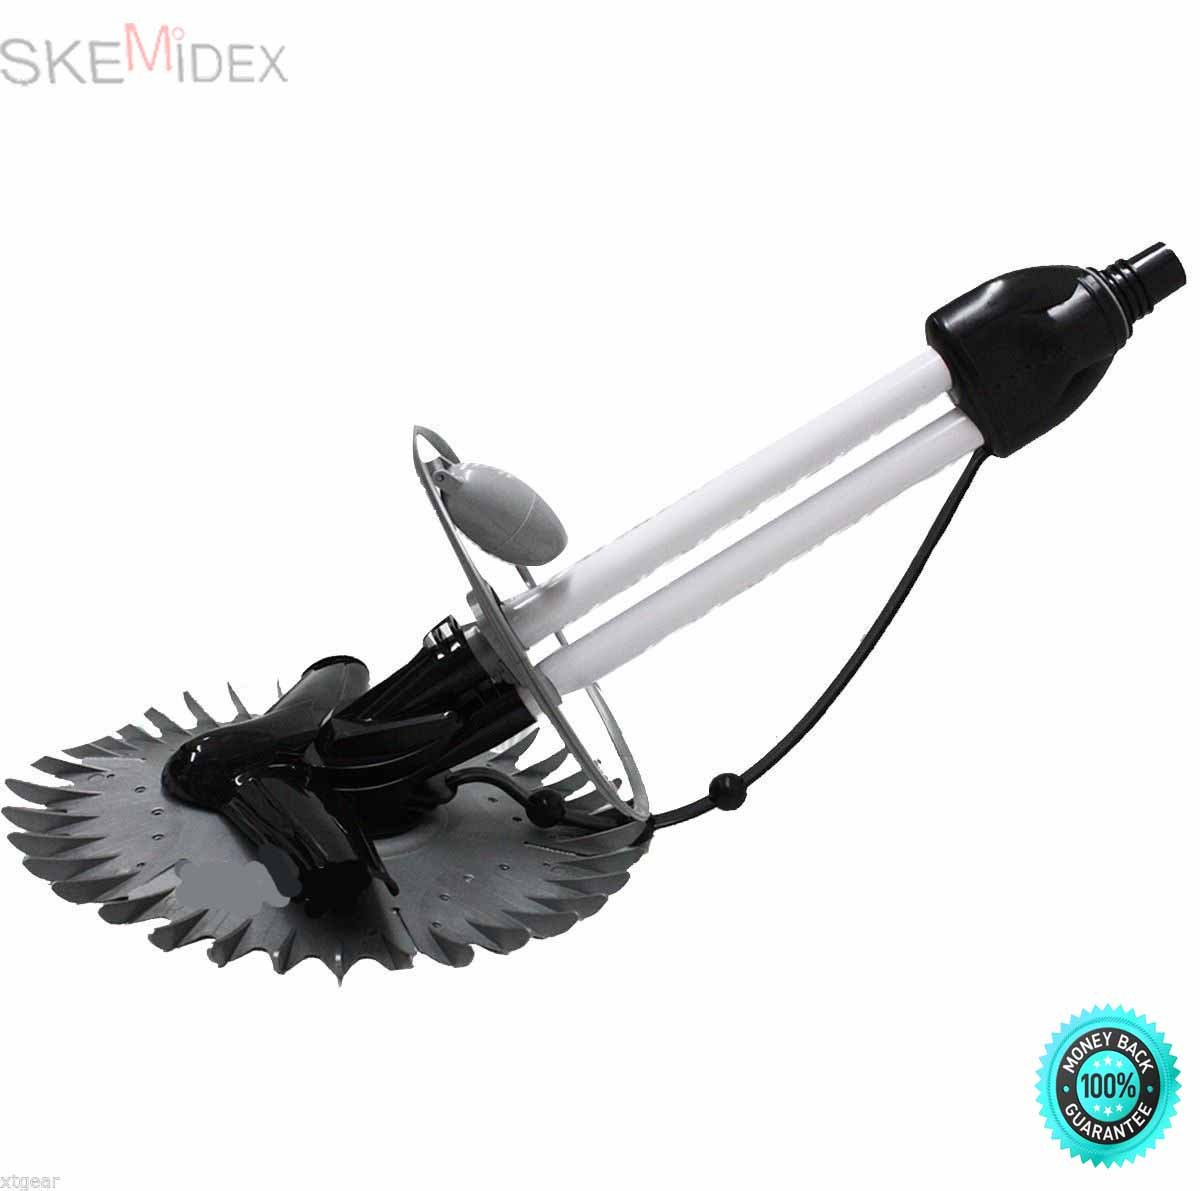 SKEMiDEX---Automatic Swimming pool clener inground above ground Deluxe Inground / above Pool Cleaner, Floor Wall climbing cleaner The Deluxe Inground Pool Cleaner has the power to clean your inground